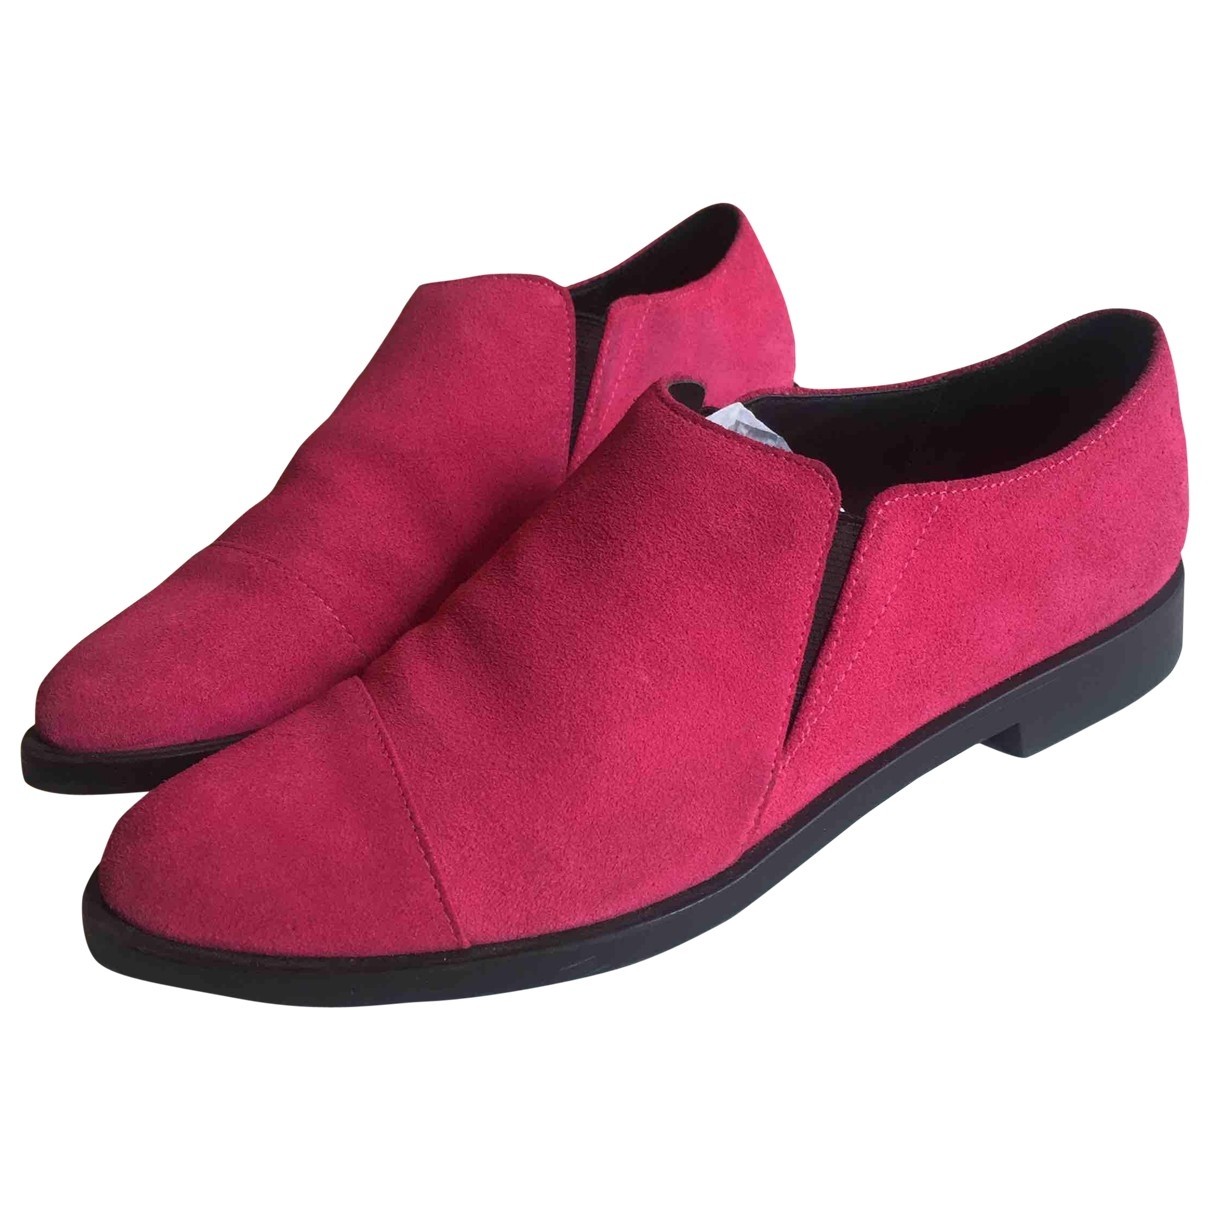 & Stories \N Pink Suede Flats for Women 38 EU